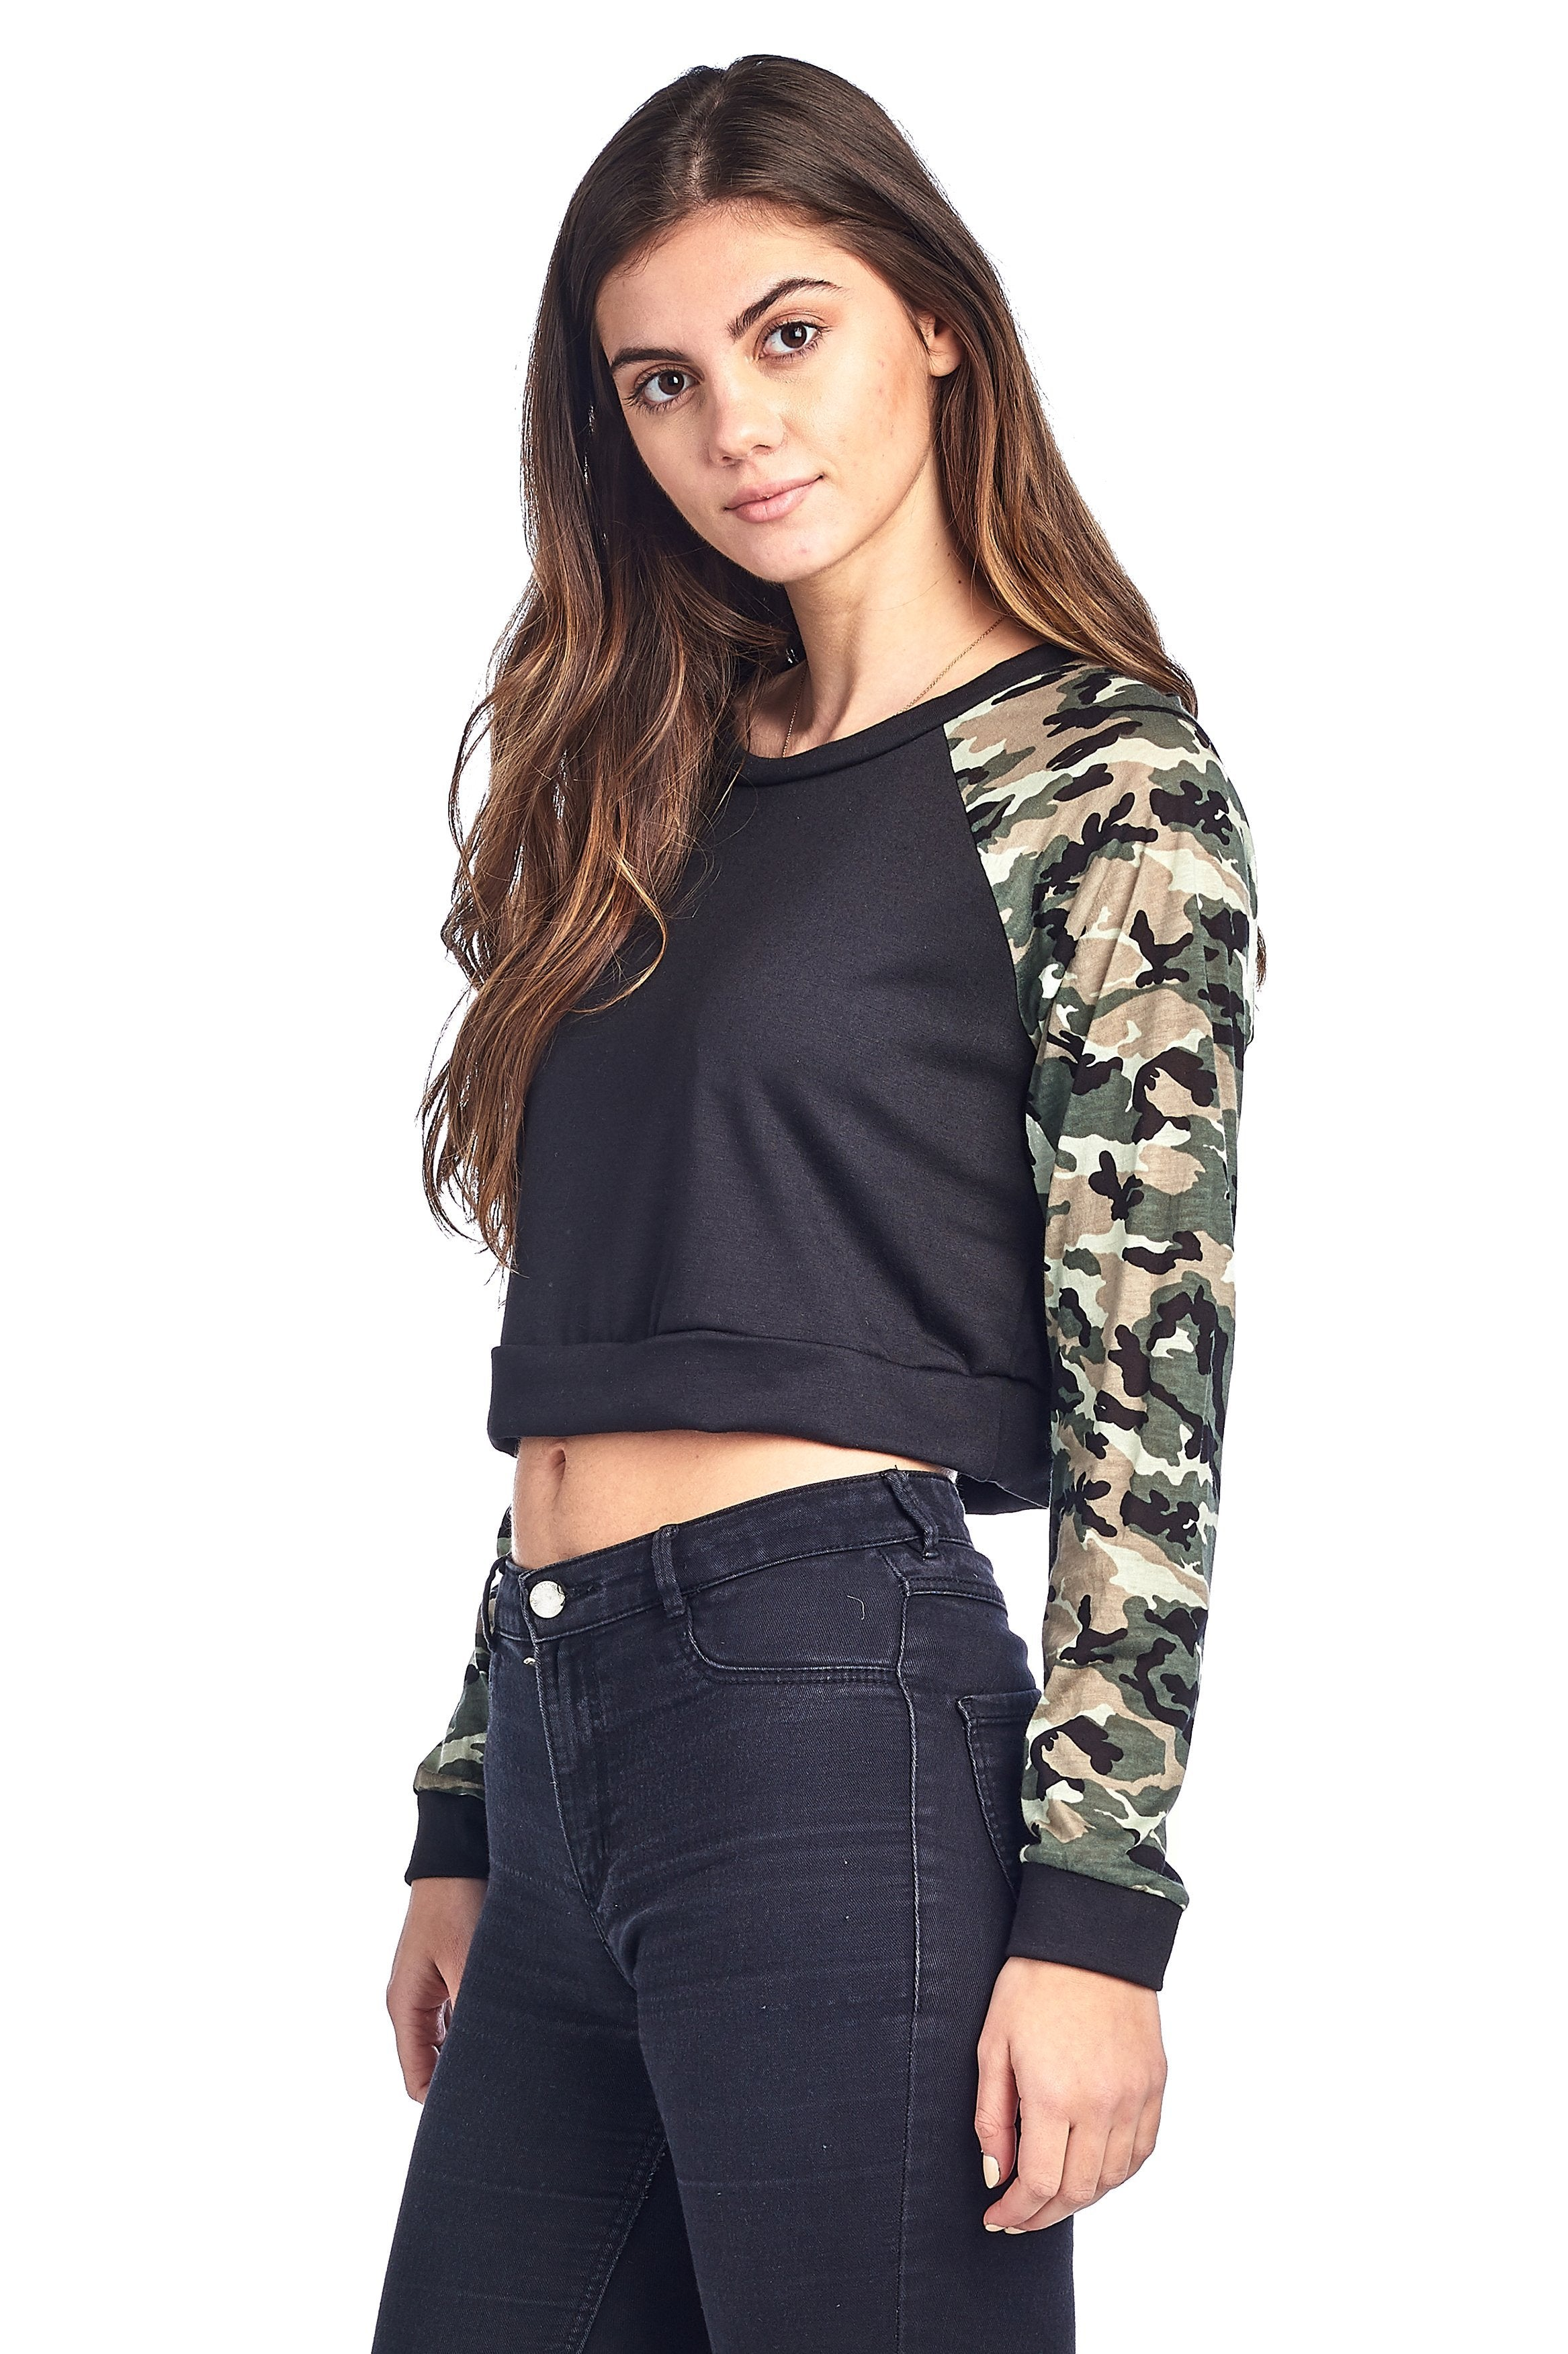 Long Sleeve Round Neck Camo Contrast Sleeves Cropped Sweatshirt Top